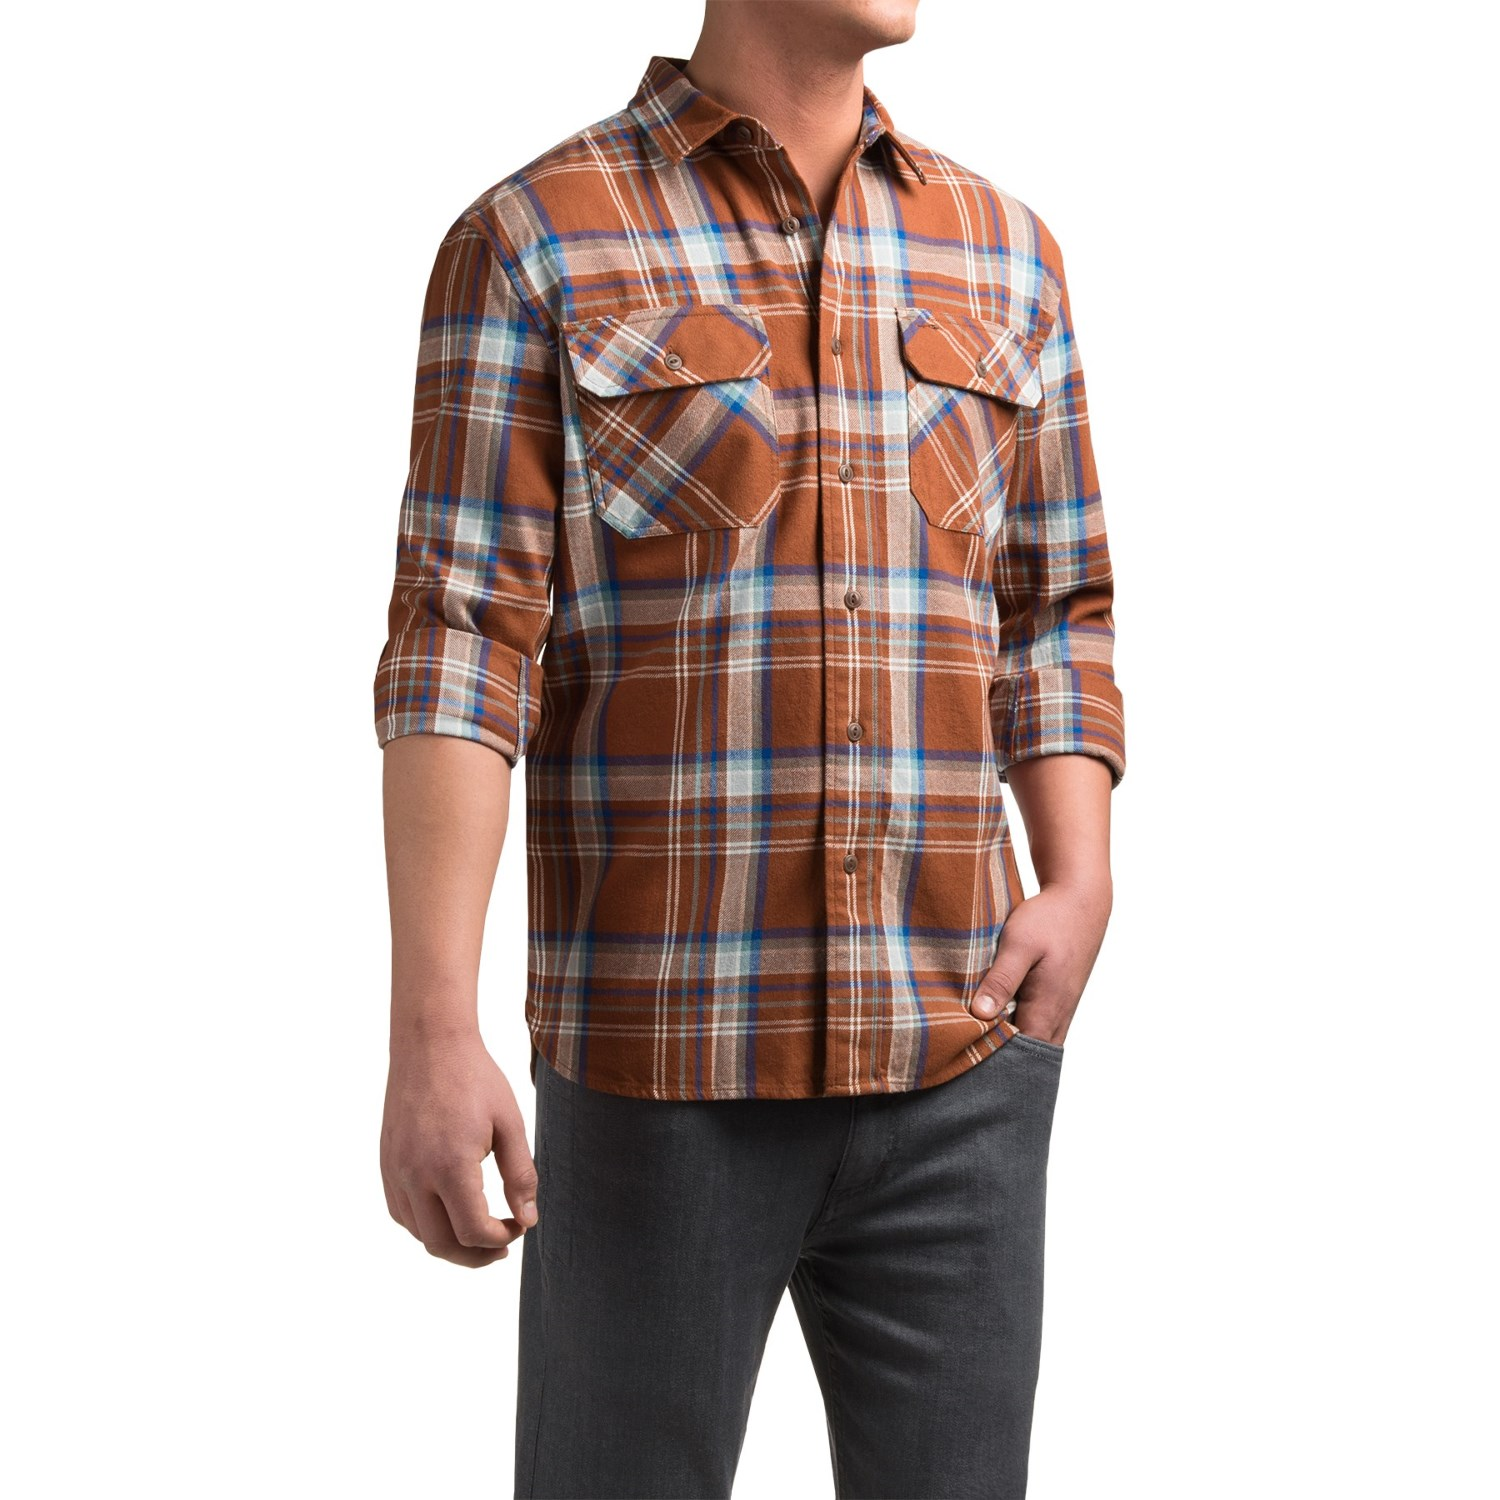 Looking to stock up on stylish flannels for men in a variety of colors from all the best brands? Shop for men's flannel shirts from PacSun and enjoy free shipping on all orders over $50!